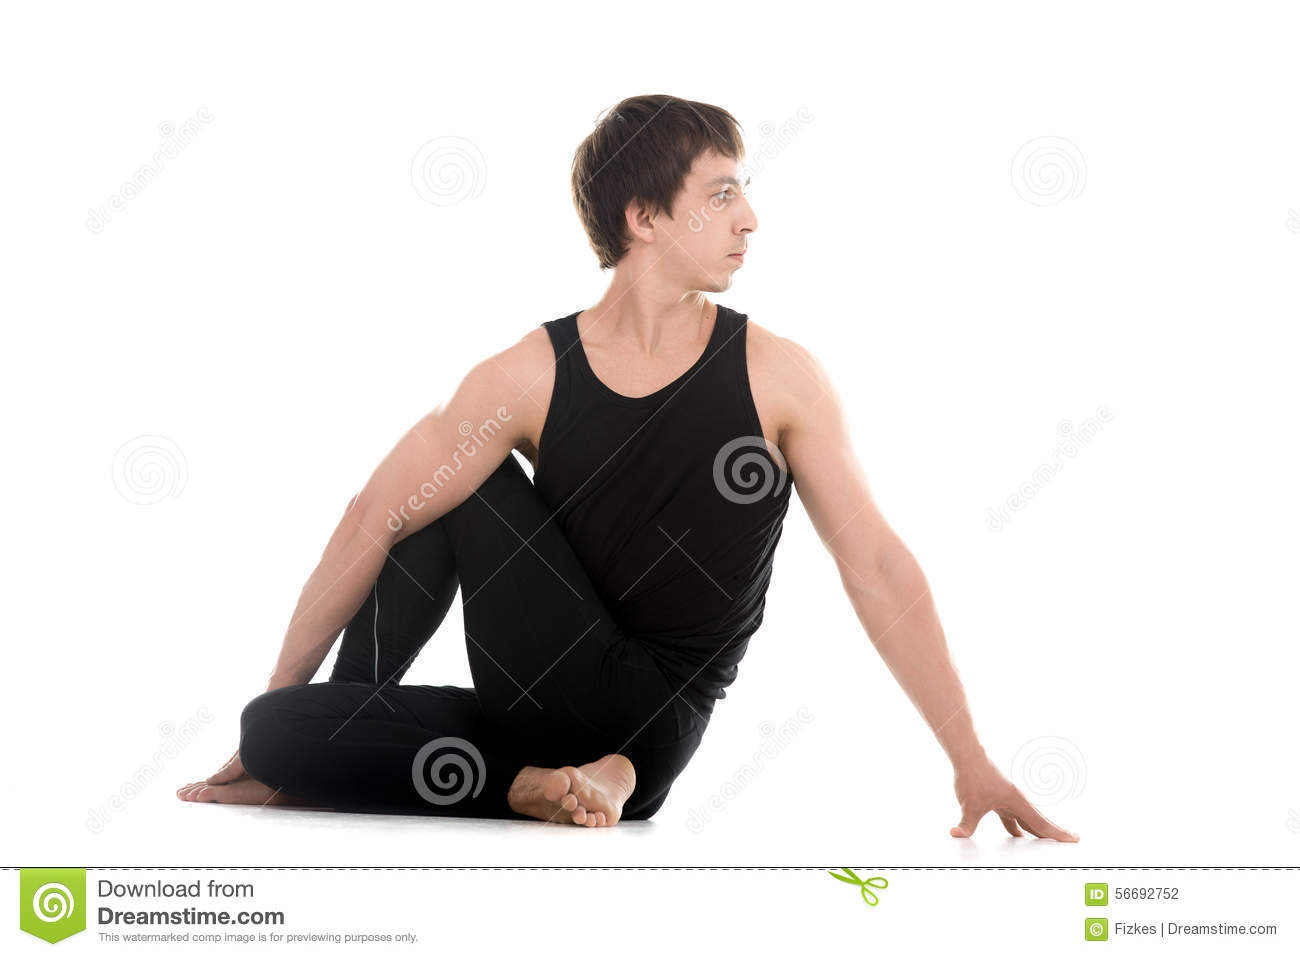 Half lord of the fishes yoga pose stock photo image for Half lord of the fishes